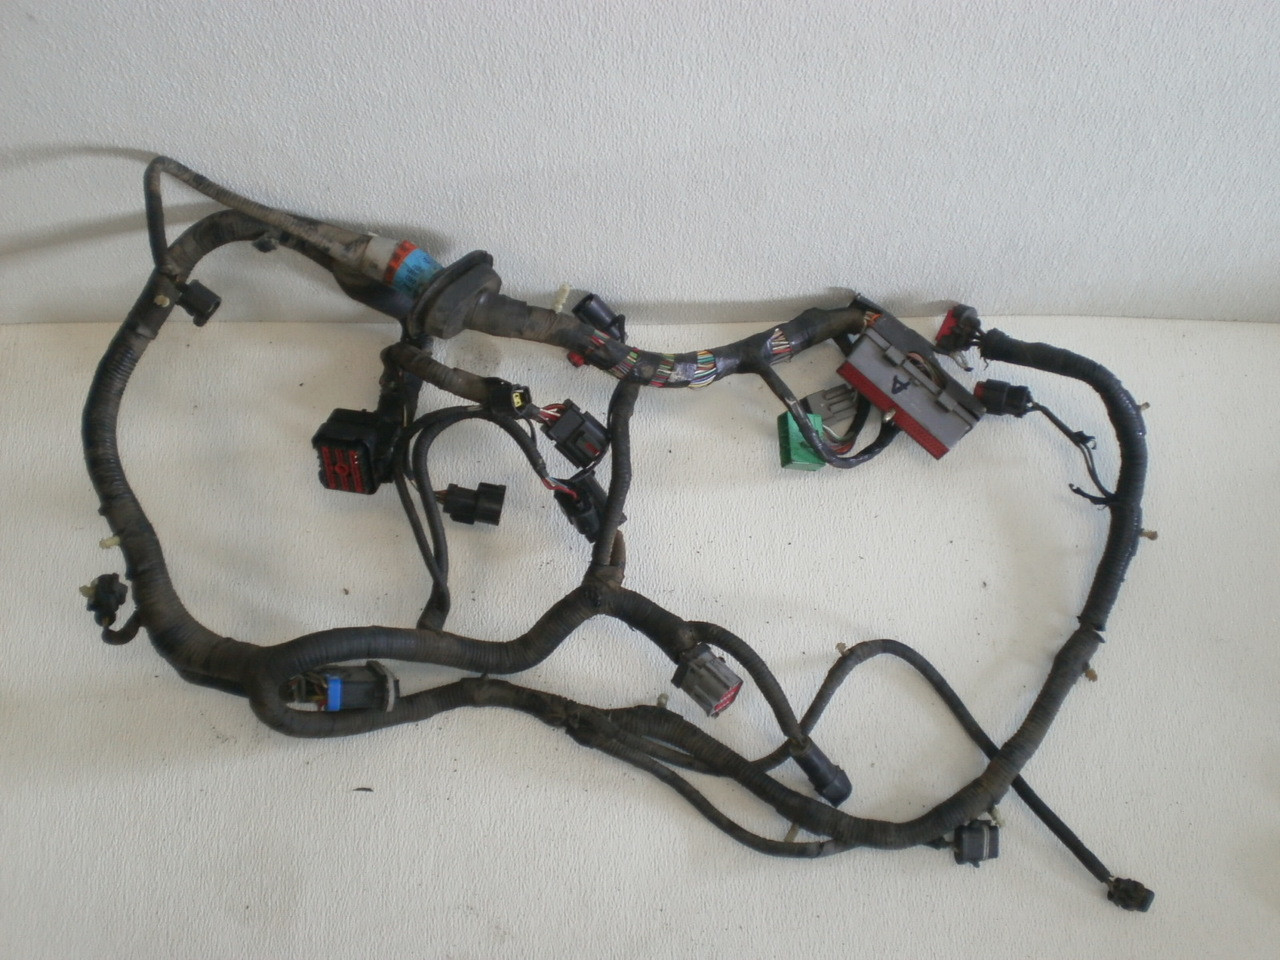 2001 Mustang Wiring Harness - Wiring Diagram Srconds on